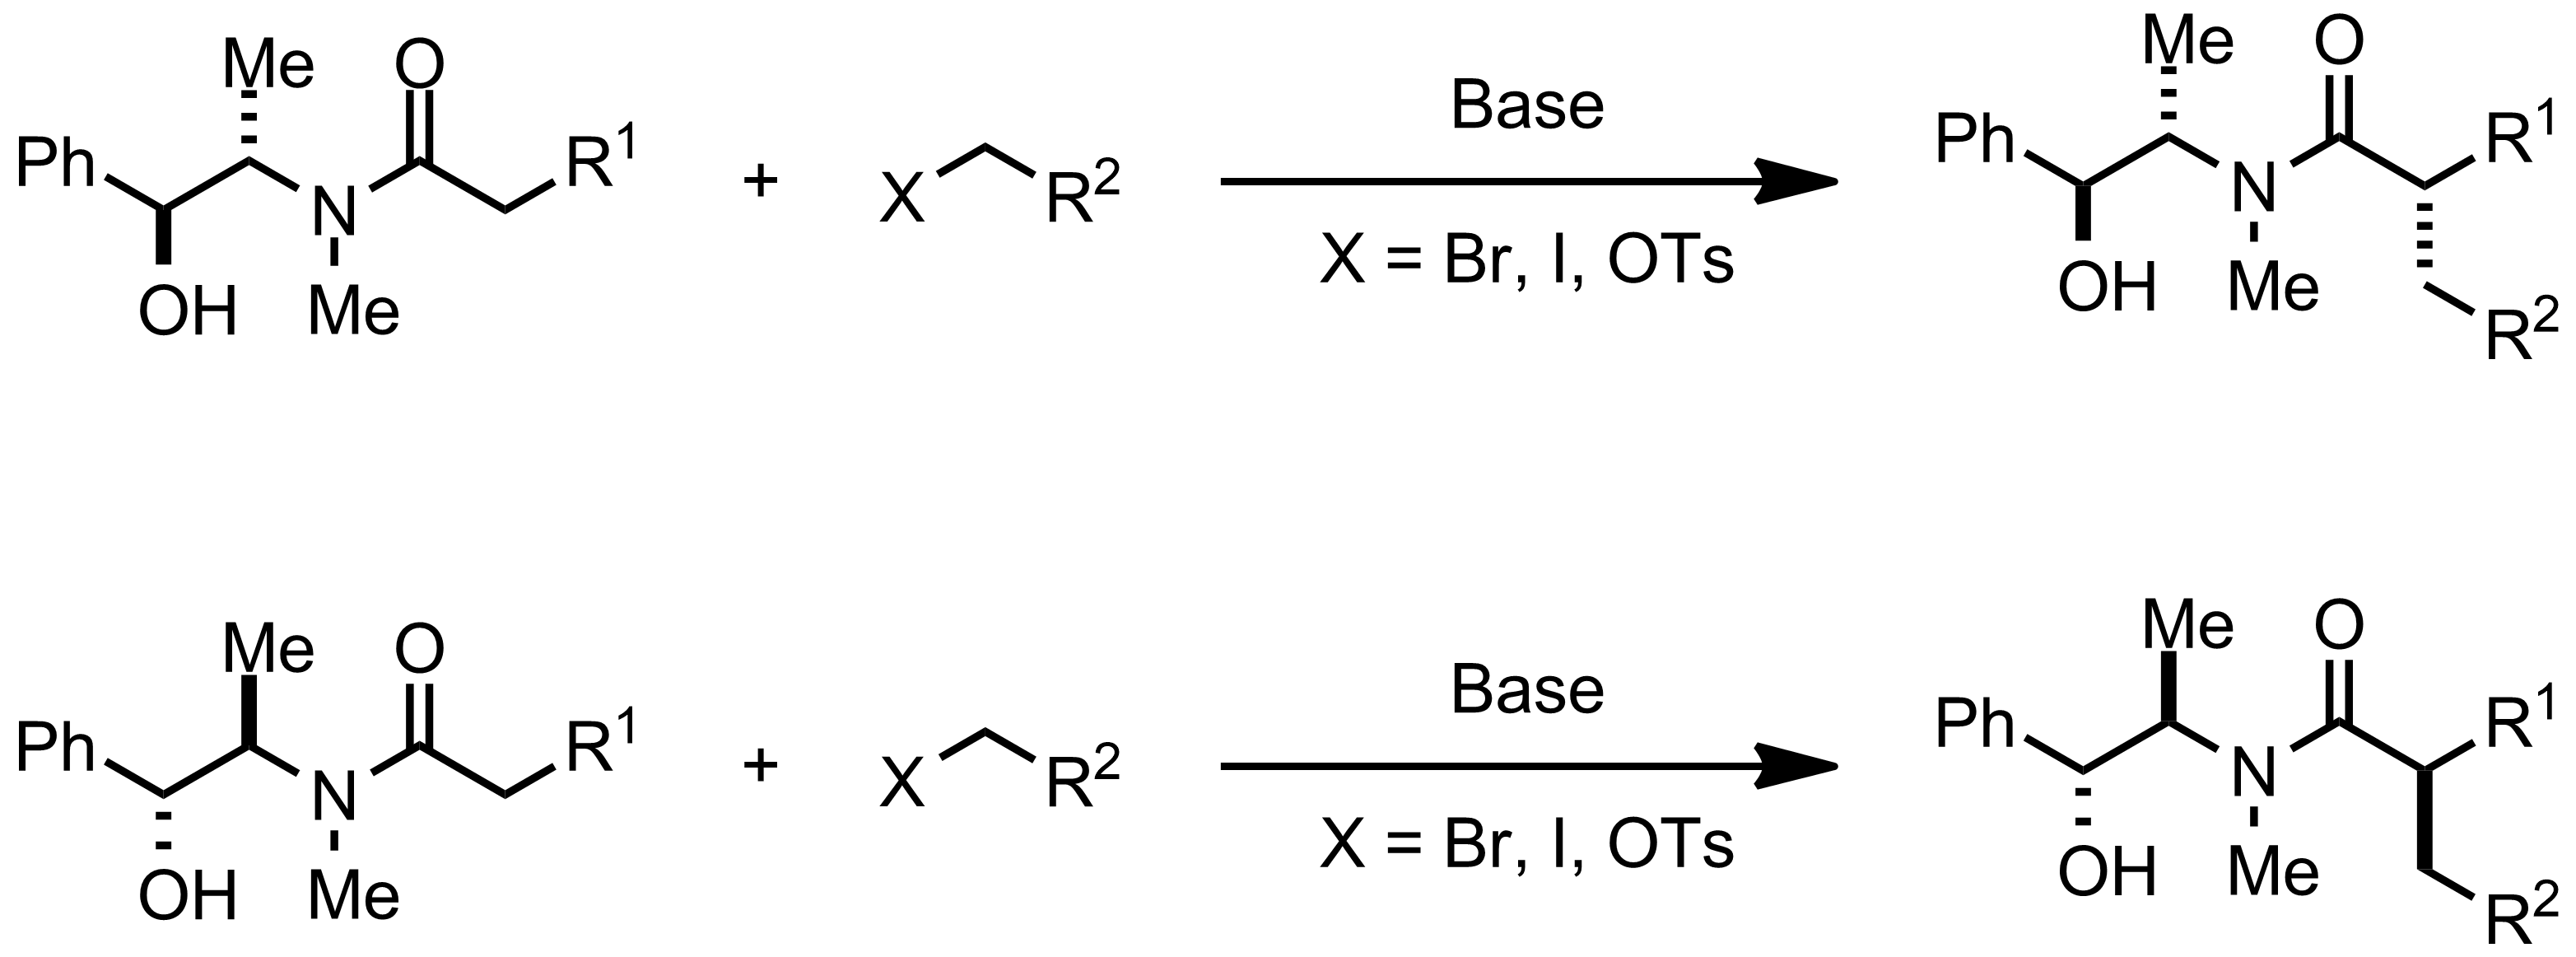 Schematic representation of the Myers Asymmetric Alkylation.